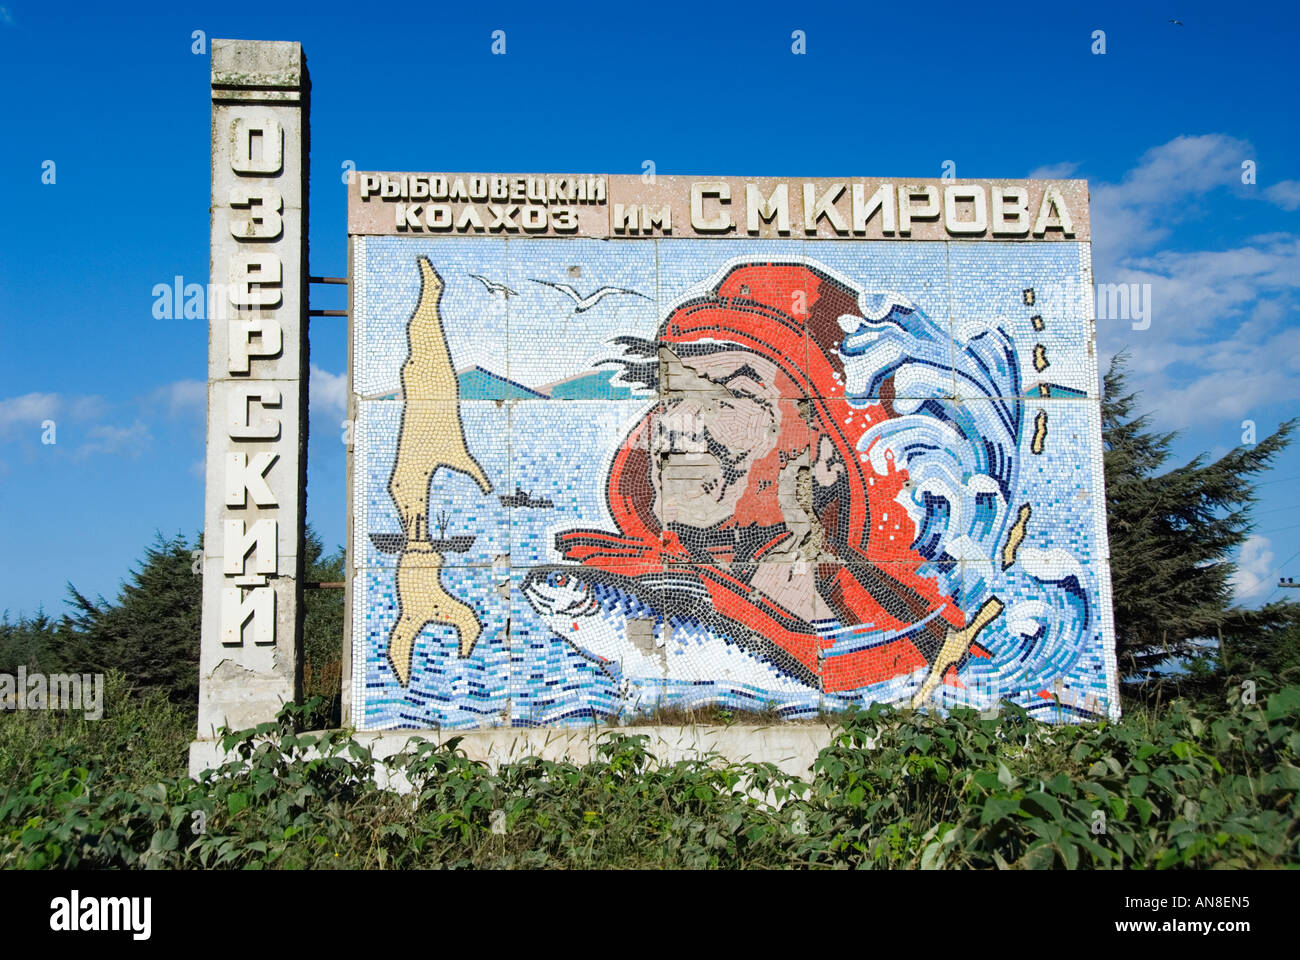 Large soviet era murals with fishing theme  at entrance to Ozersky village on Sakhalin Island Russia - Stock Image